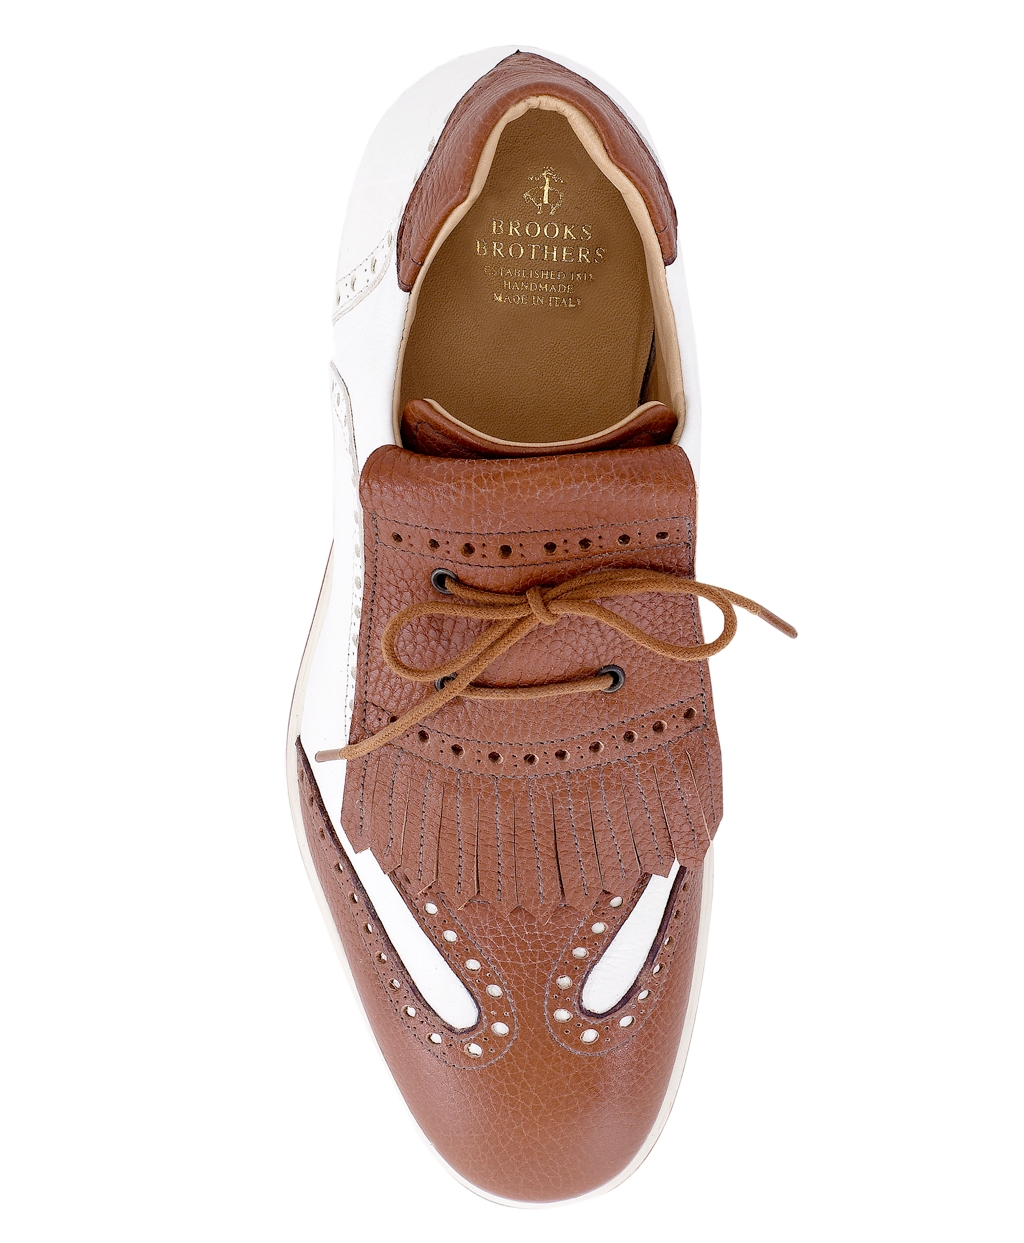 c89fcc5cd8d96 Lyst brooks brothers kiltie golf shoes in brown for men jpg 1024x1243 Brooks  golf shoes